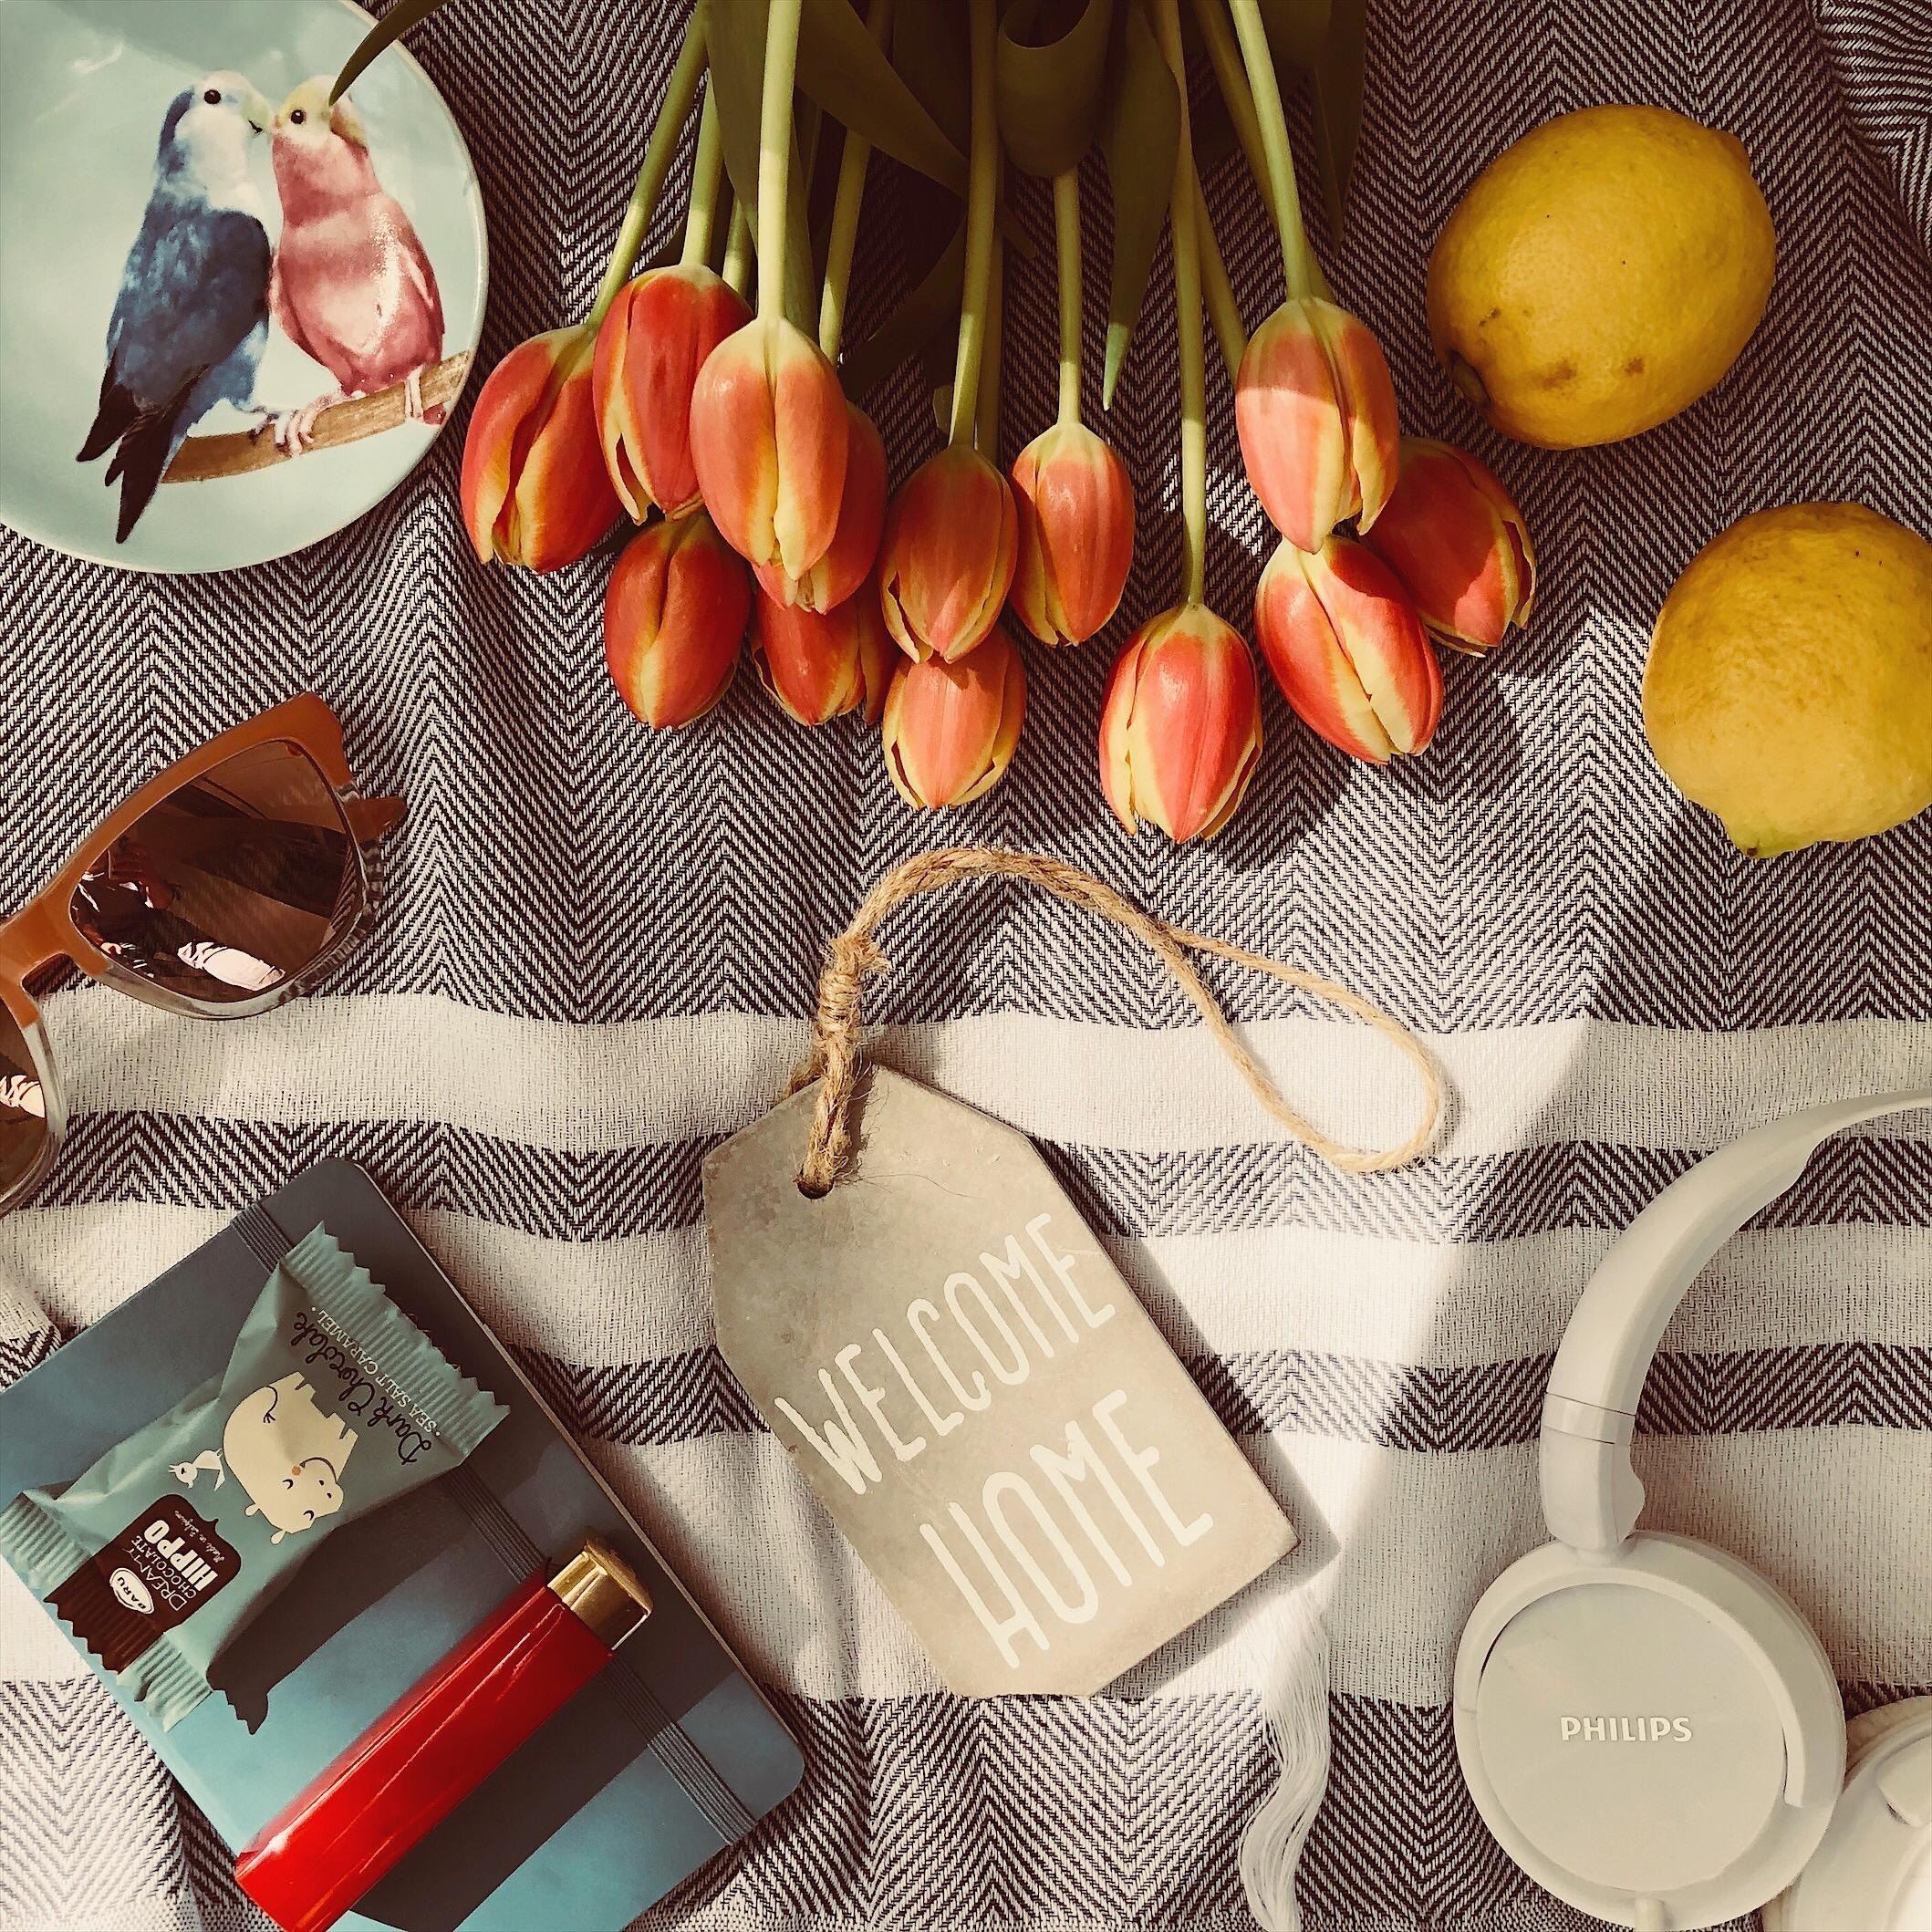 things that make you feel hmmm.. #music #thesimplethings #flatlaystyle #slowliving #tulips #decor #homedecor #strandtuch